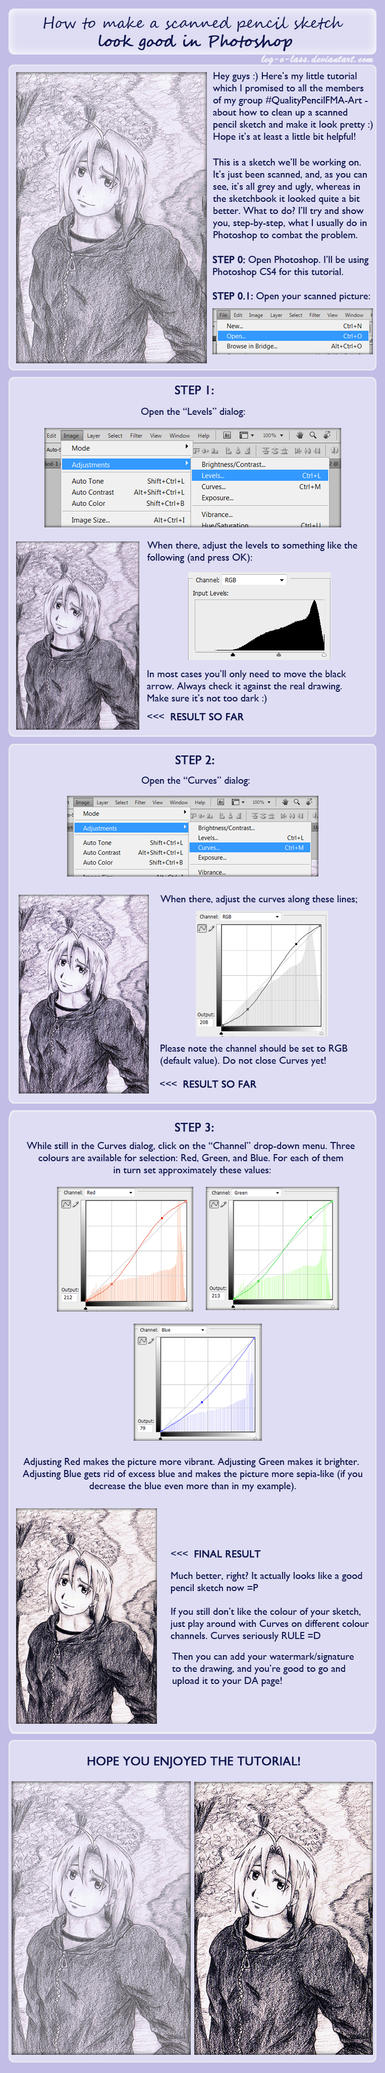 Tutorial: Fixing Up Pencil Sketches by leg-o-lass